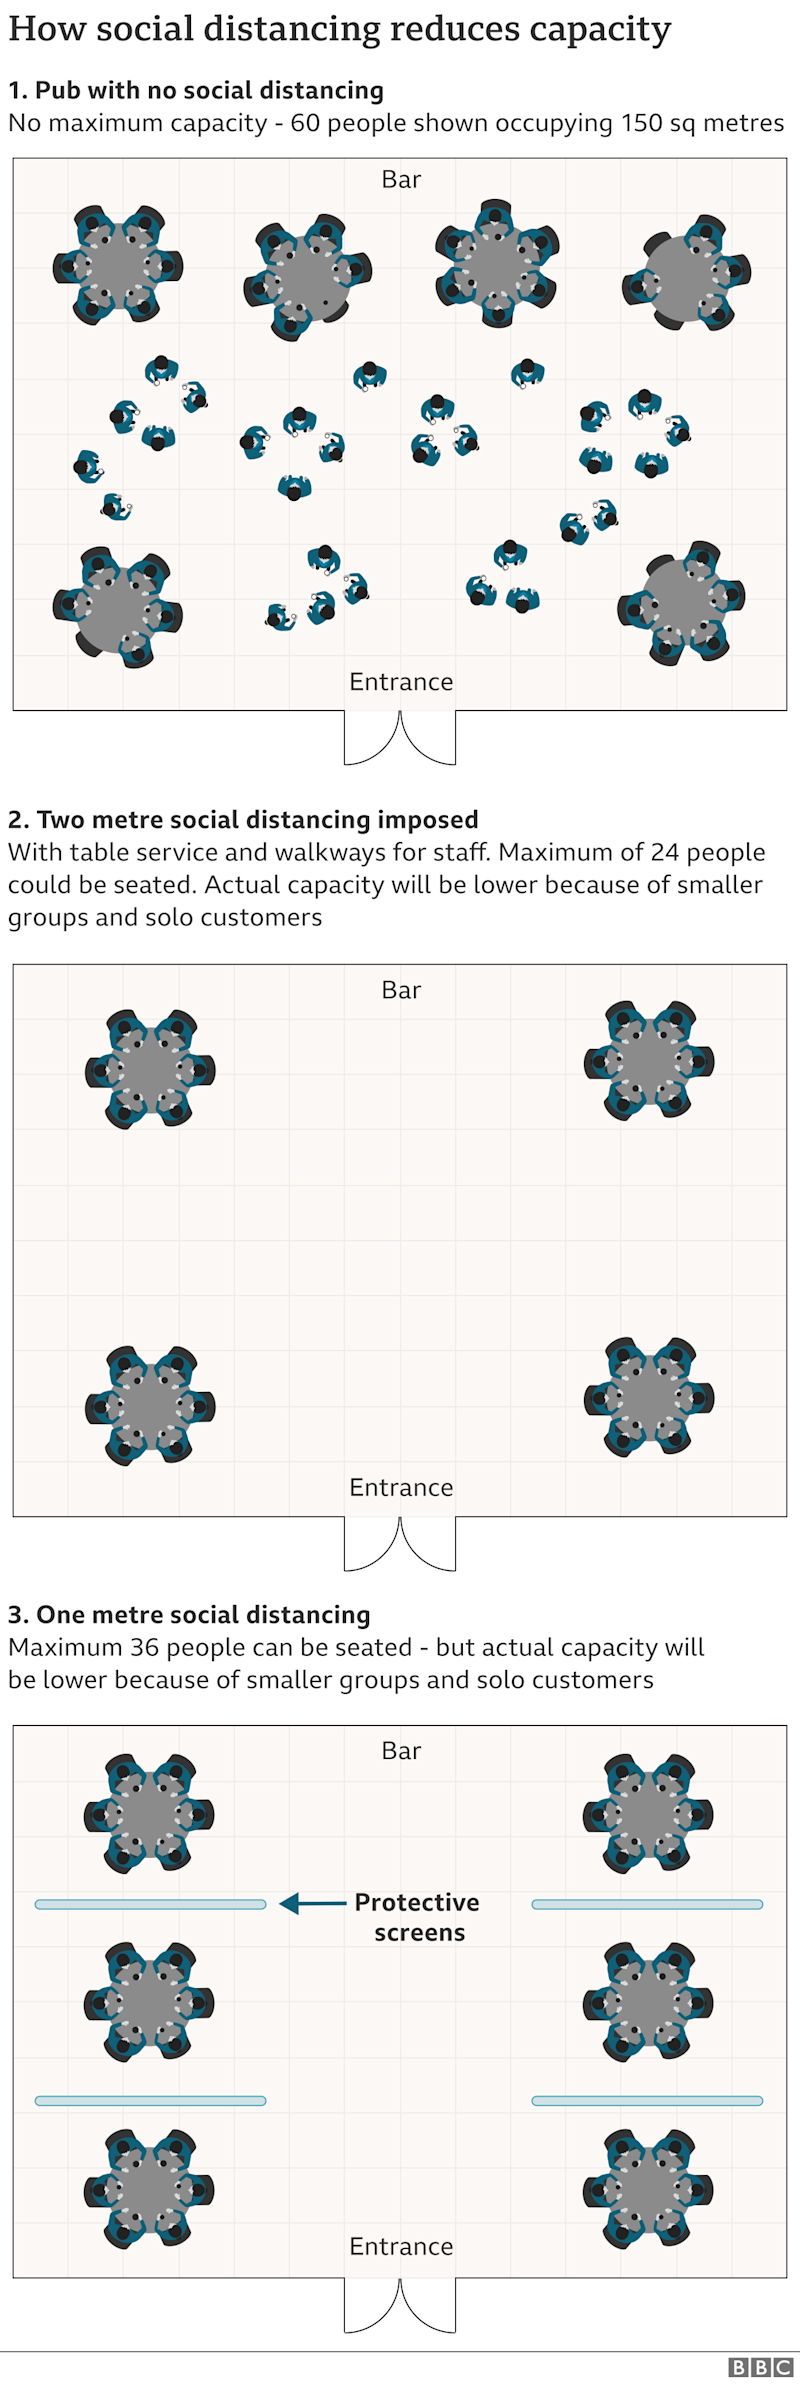 How social distancing works at different distances in pubs